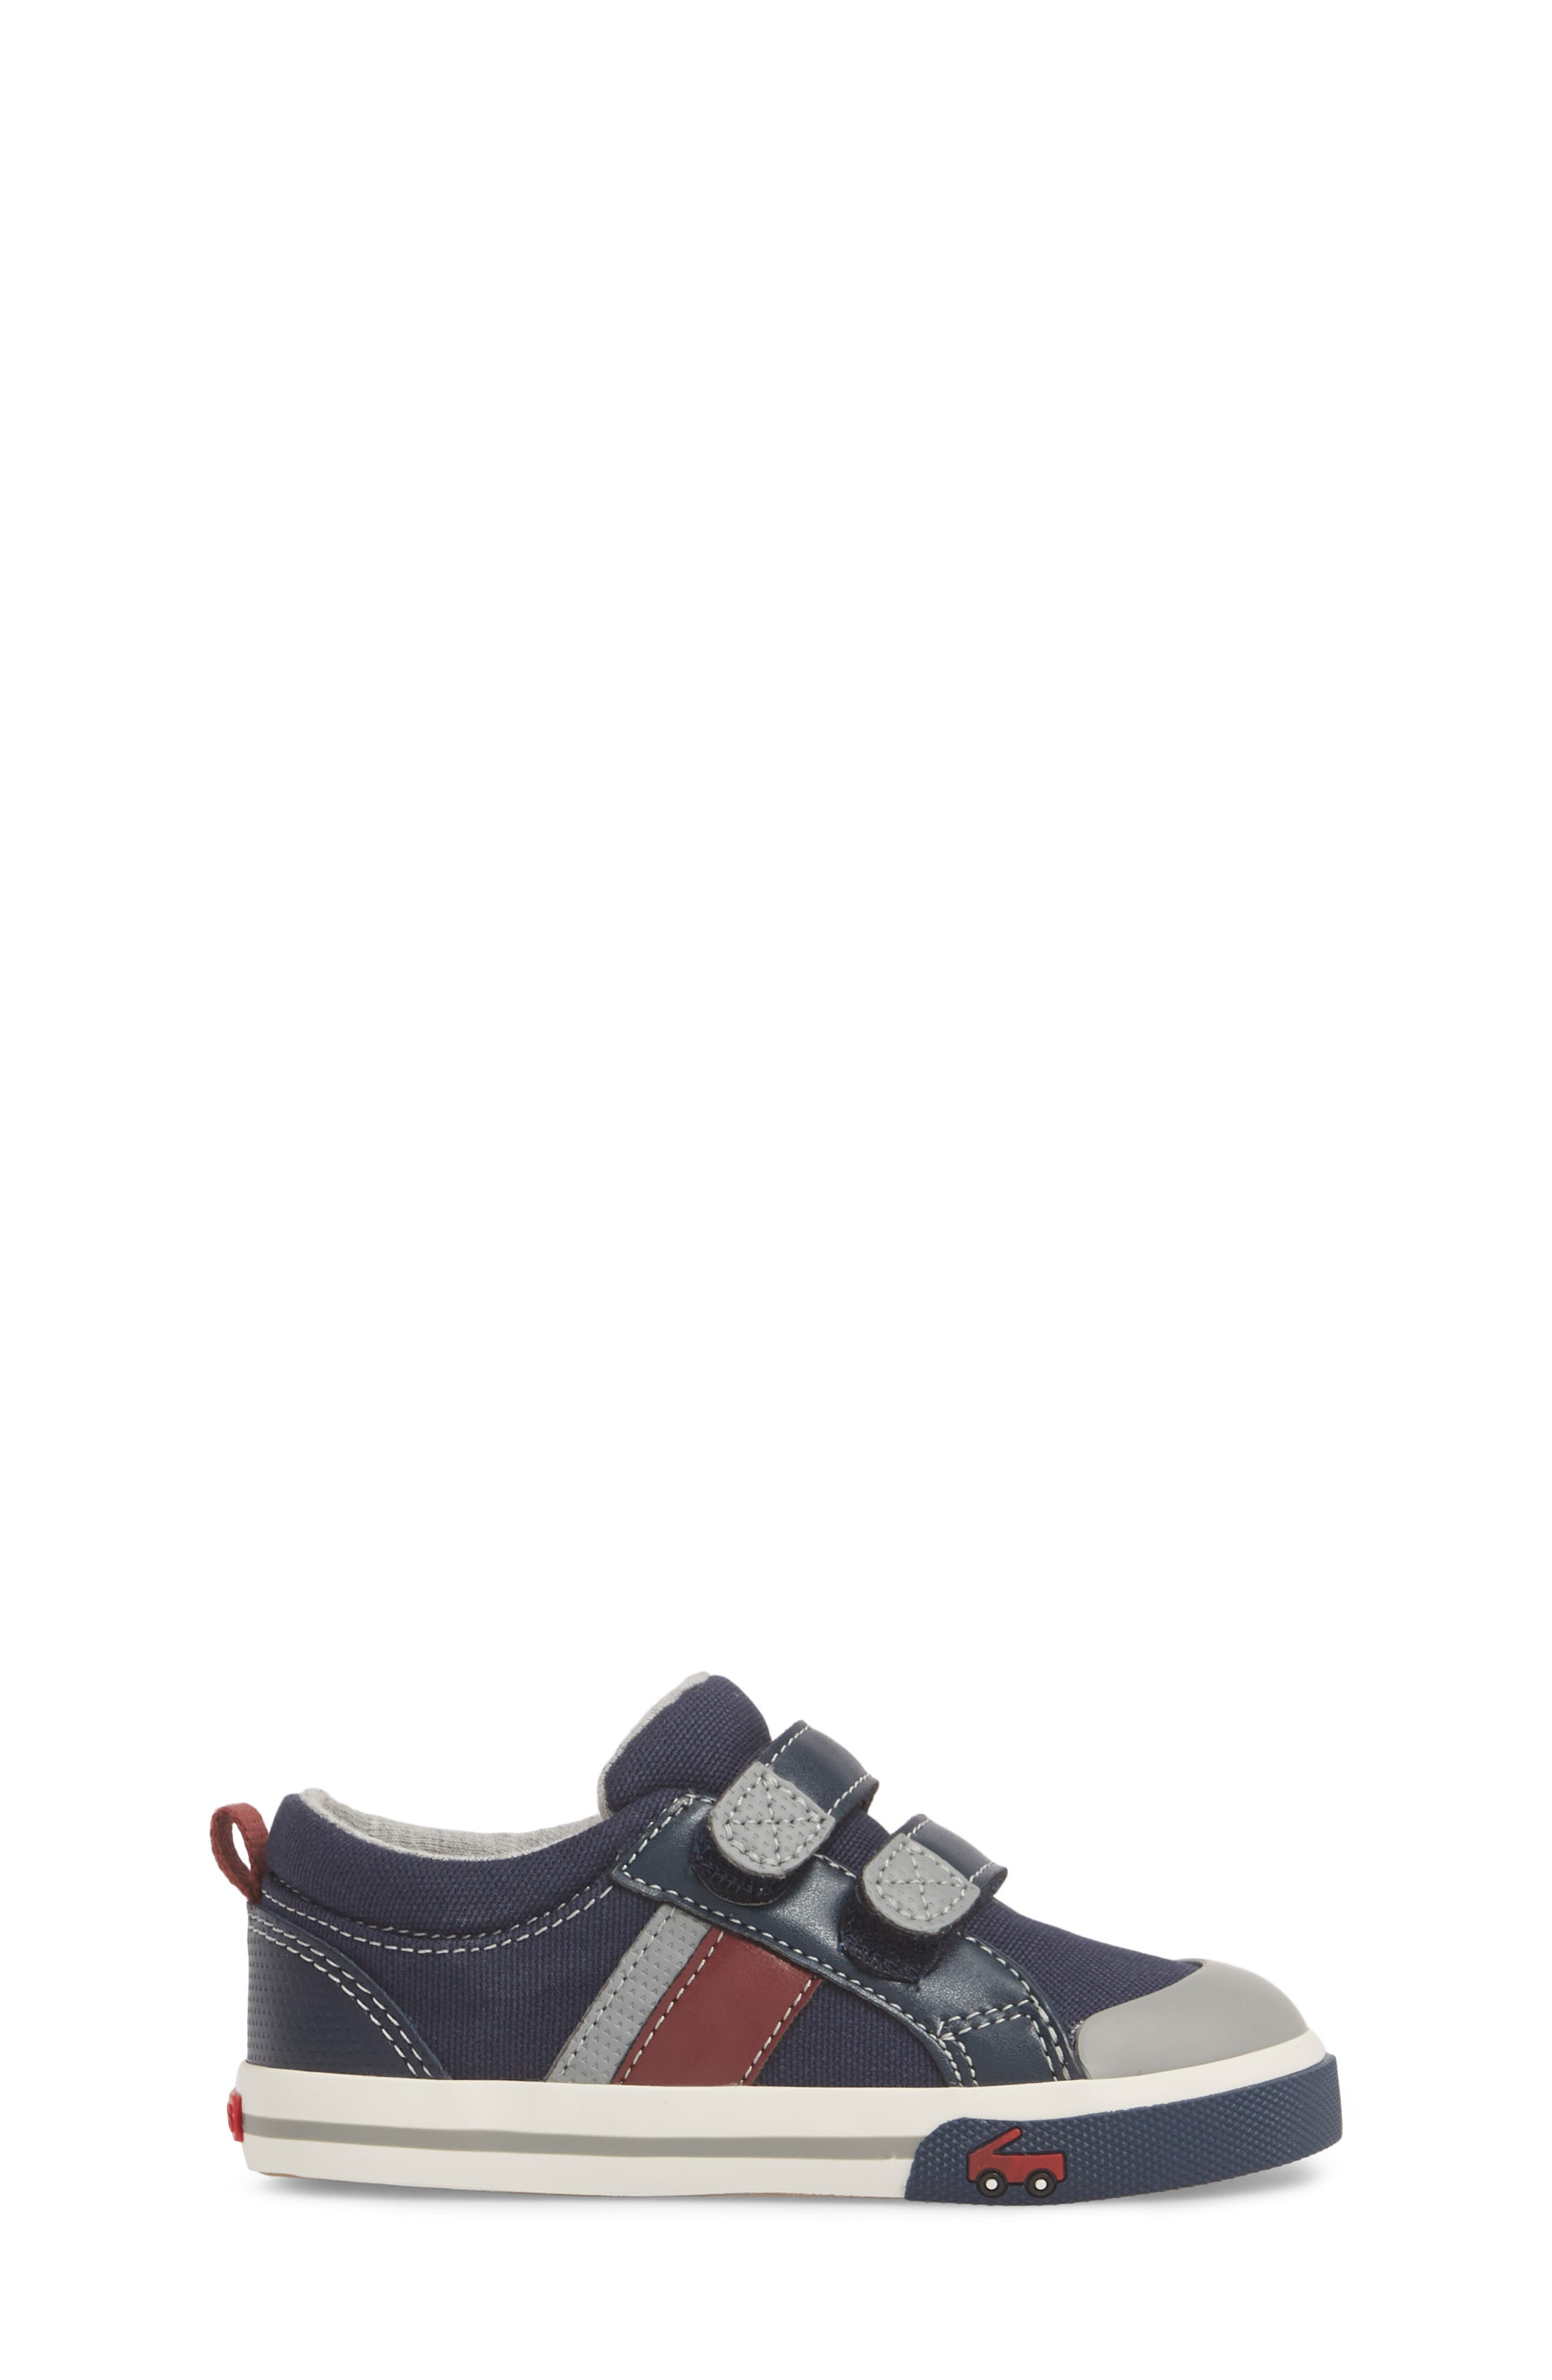 'Russell' Sneaker,                             Alternate thumbnail 3, color,                             NAVY/ RED